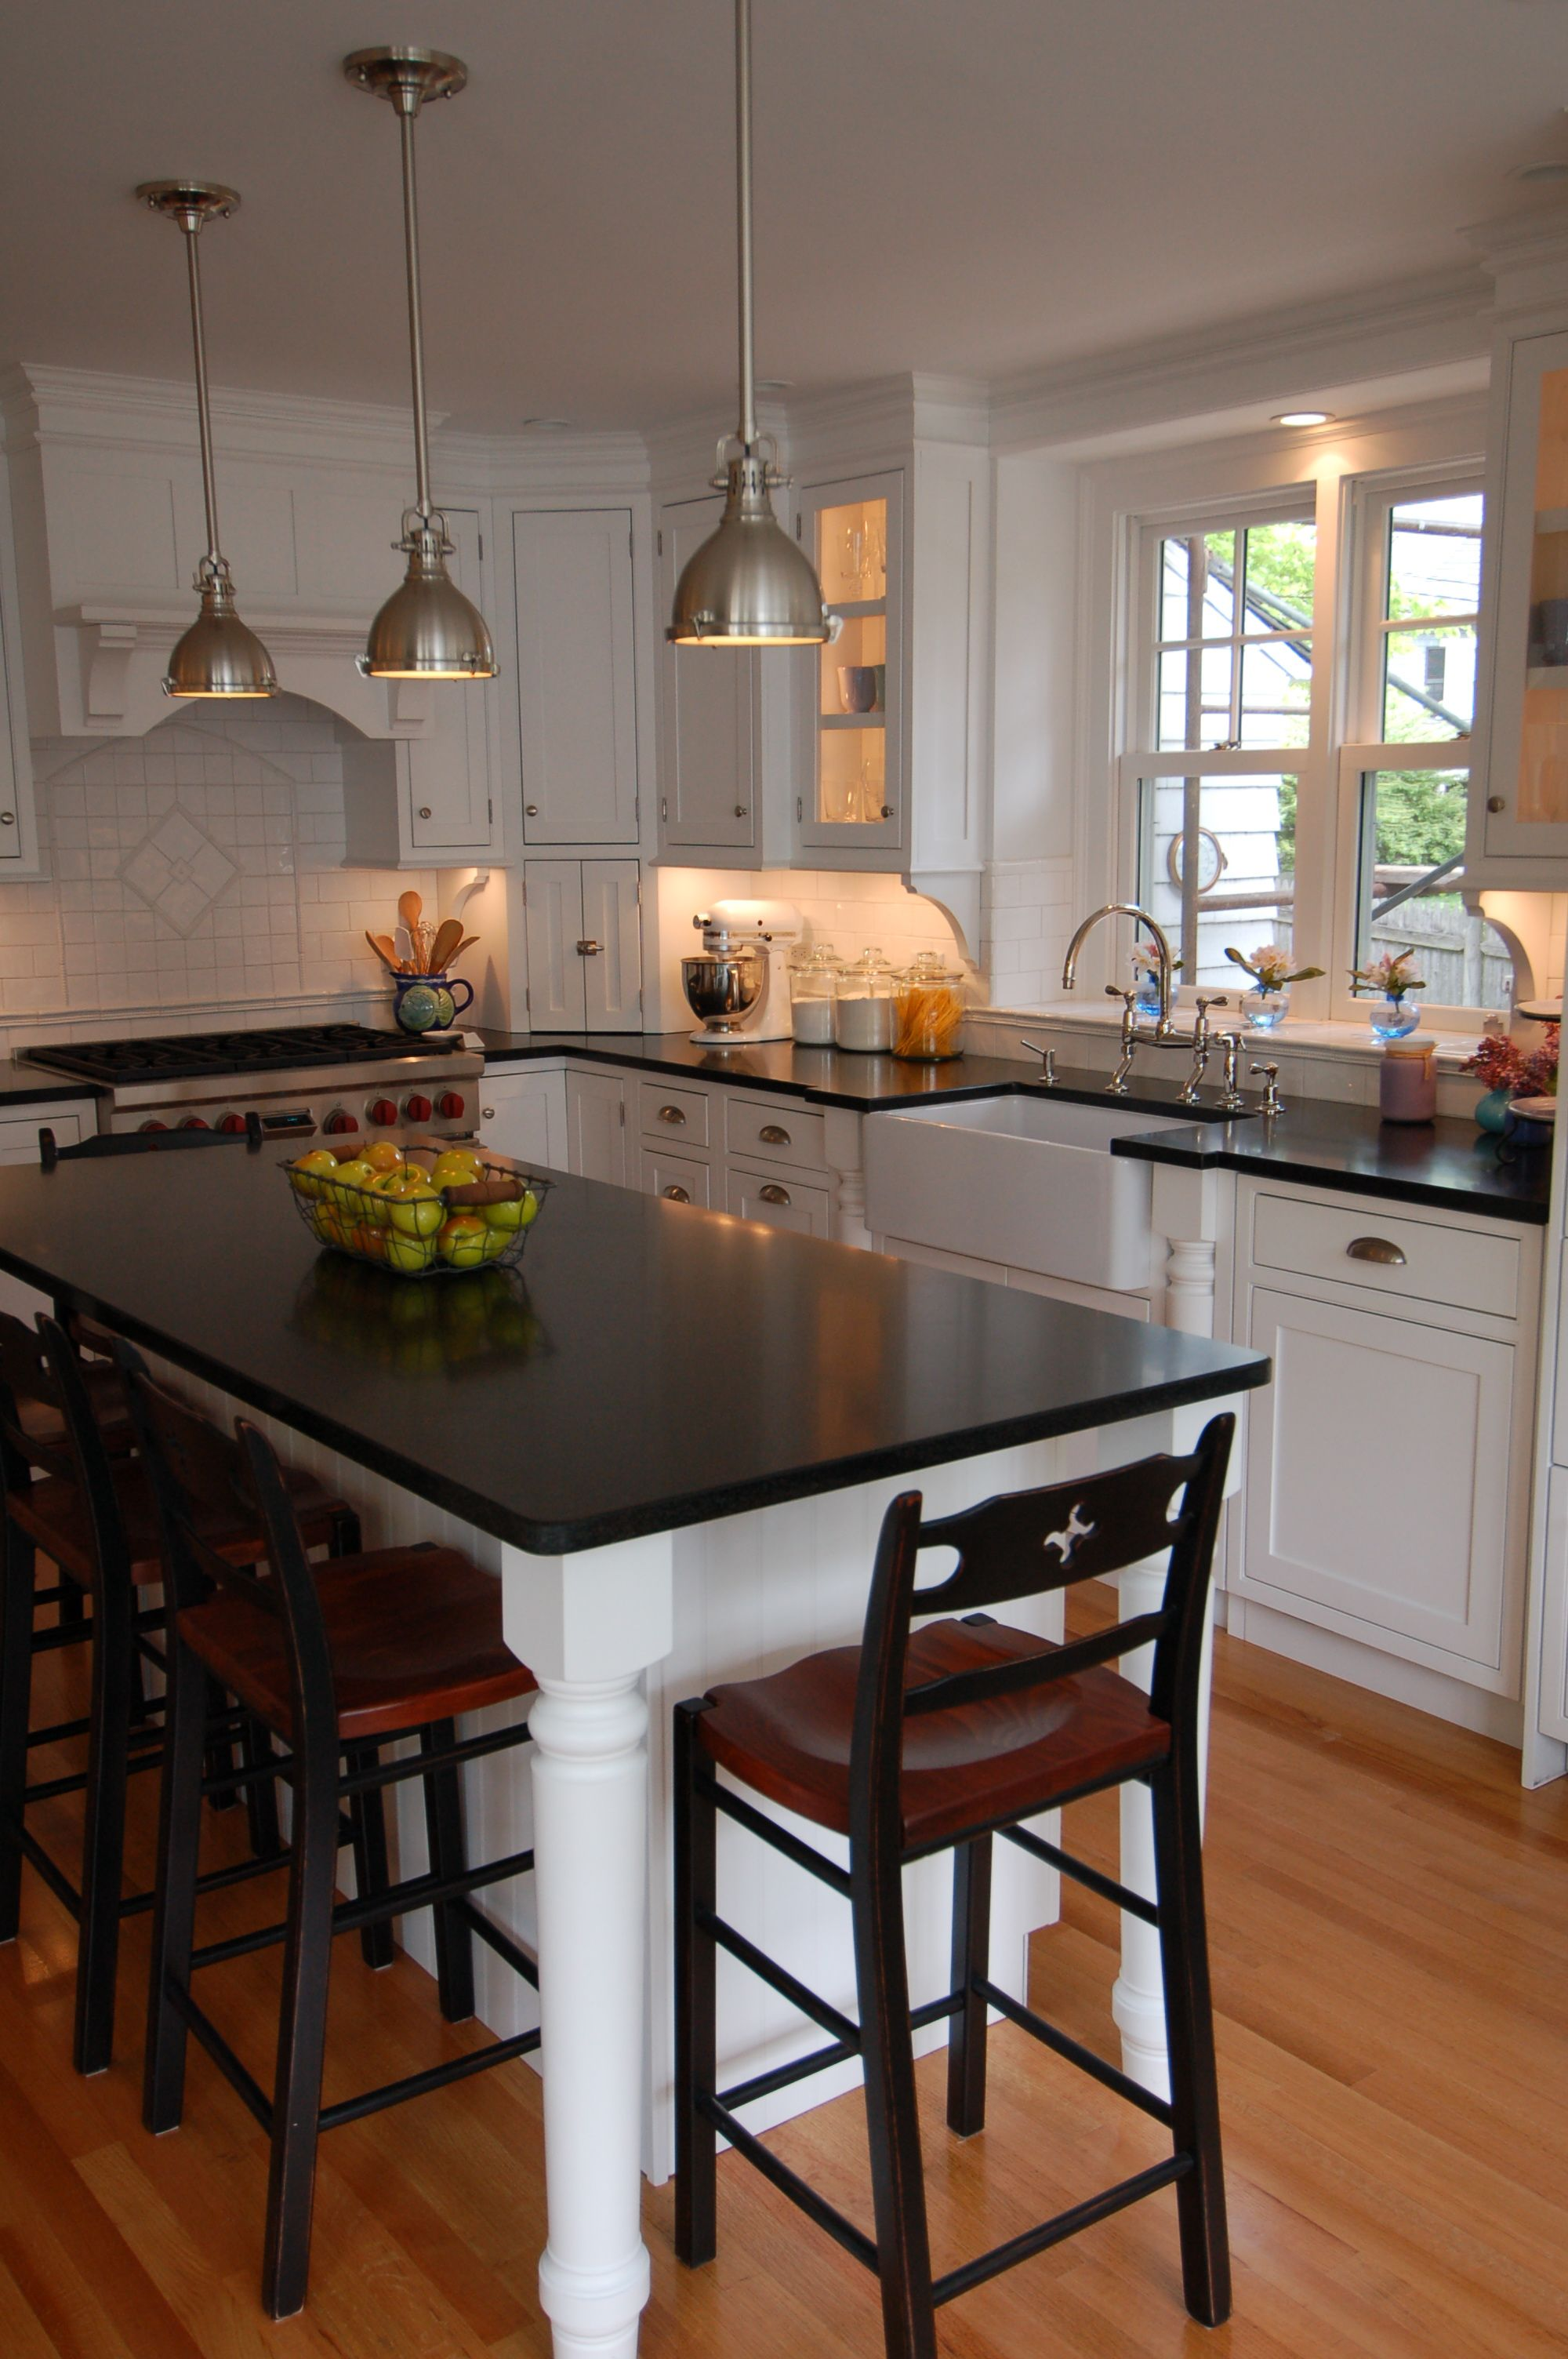 7 Recommended Kitchen Decorating Themes For Perfecting: Sink And Stove Location